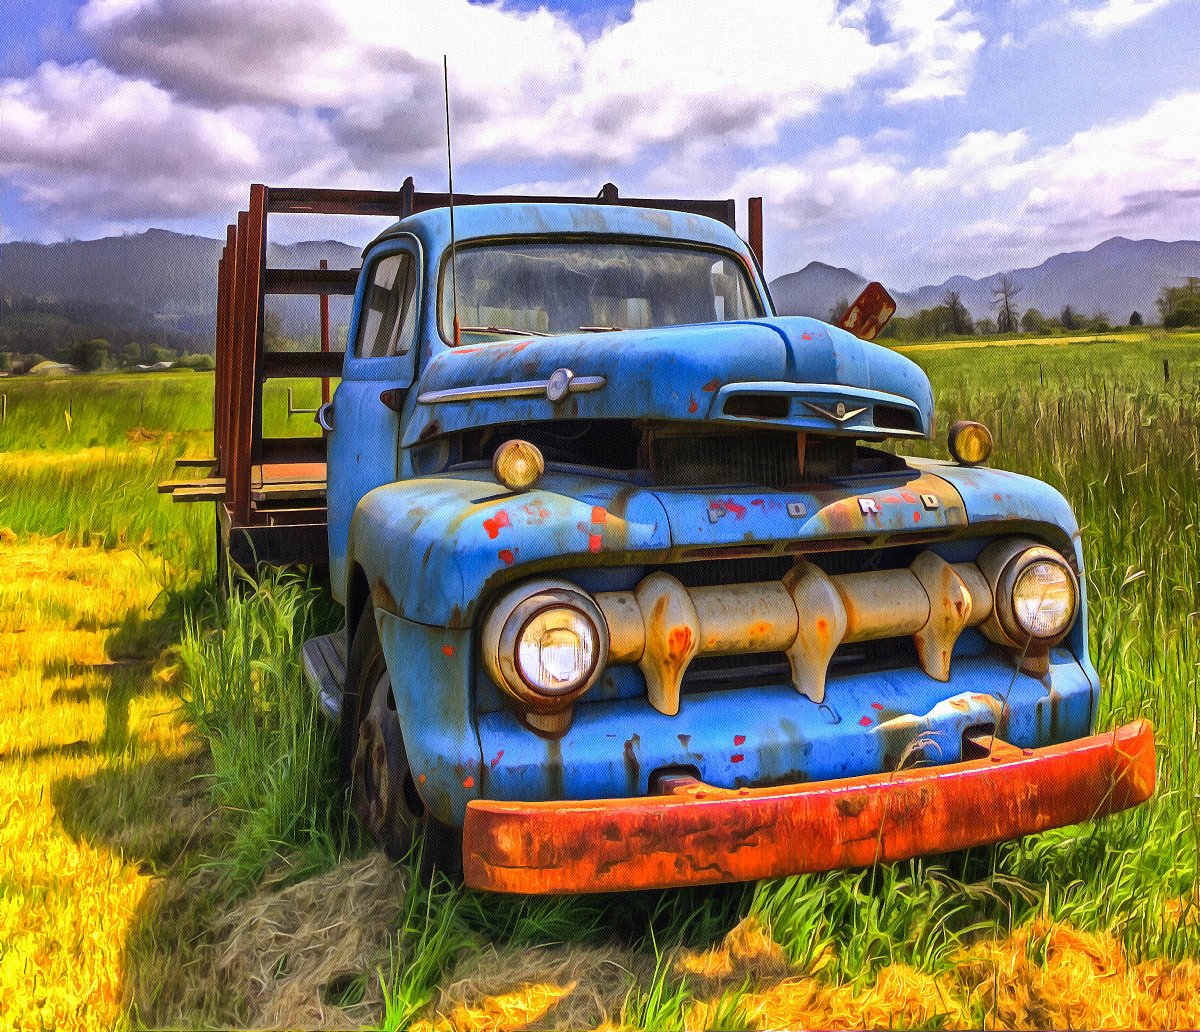 Check it out! Get ready to truck on down the road!  https://www. redbubble.com/people/thomr/w orks/15366486-blue-classic-48-to-52-ford-truck?asc=u &nbsp; …  #truck #trucks #art #ford #classic #truckpictures #trucknation<br>http://pic.twitter.com/nfBGWwMSdL